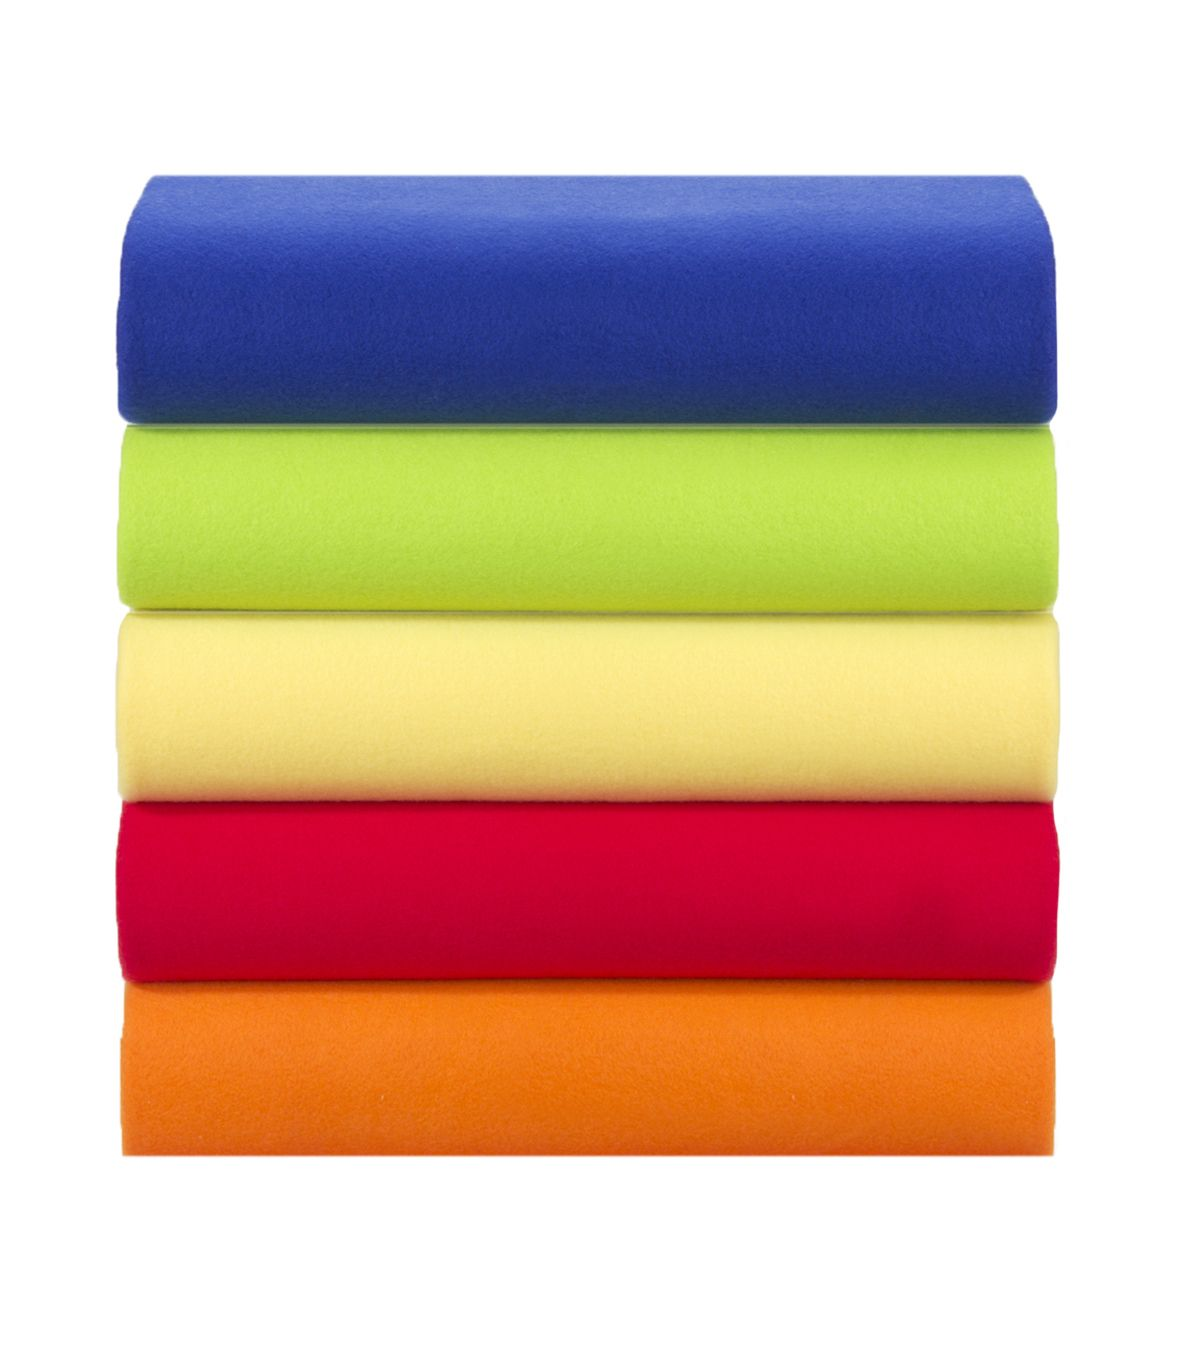 Blizzard fleece fabric solids